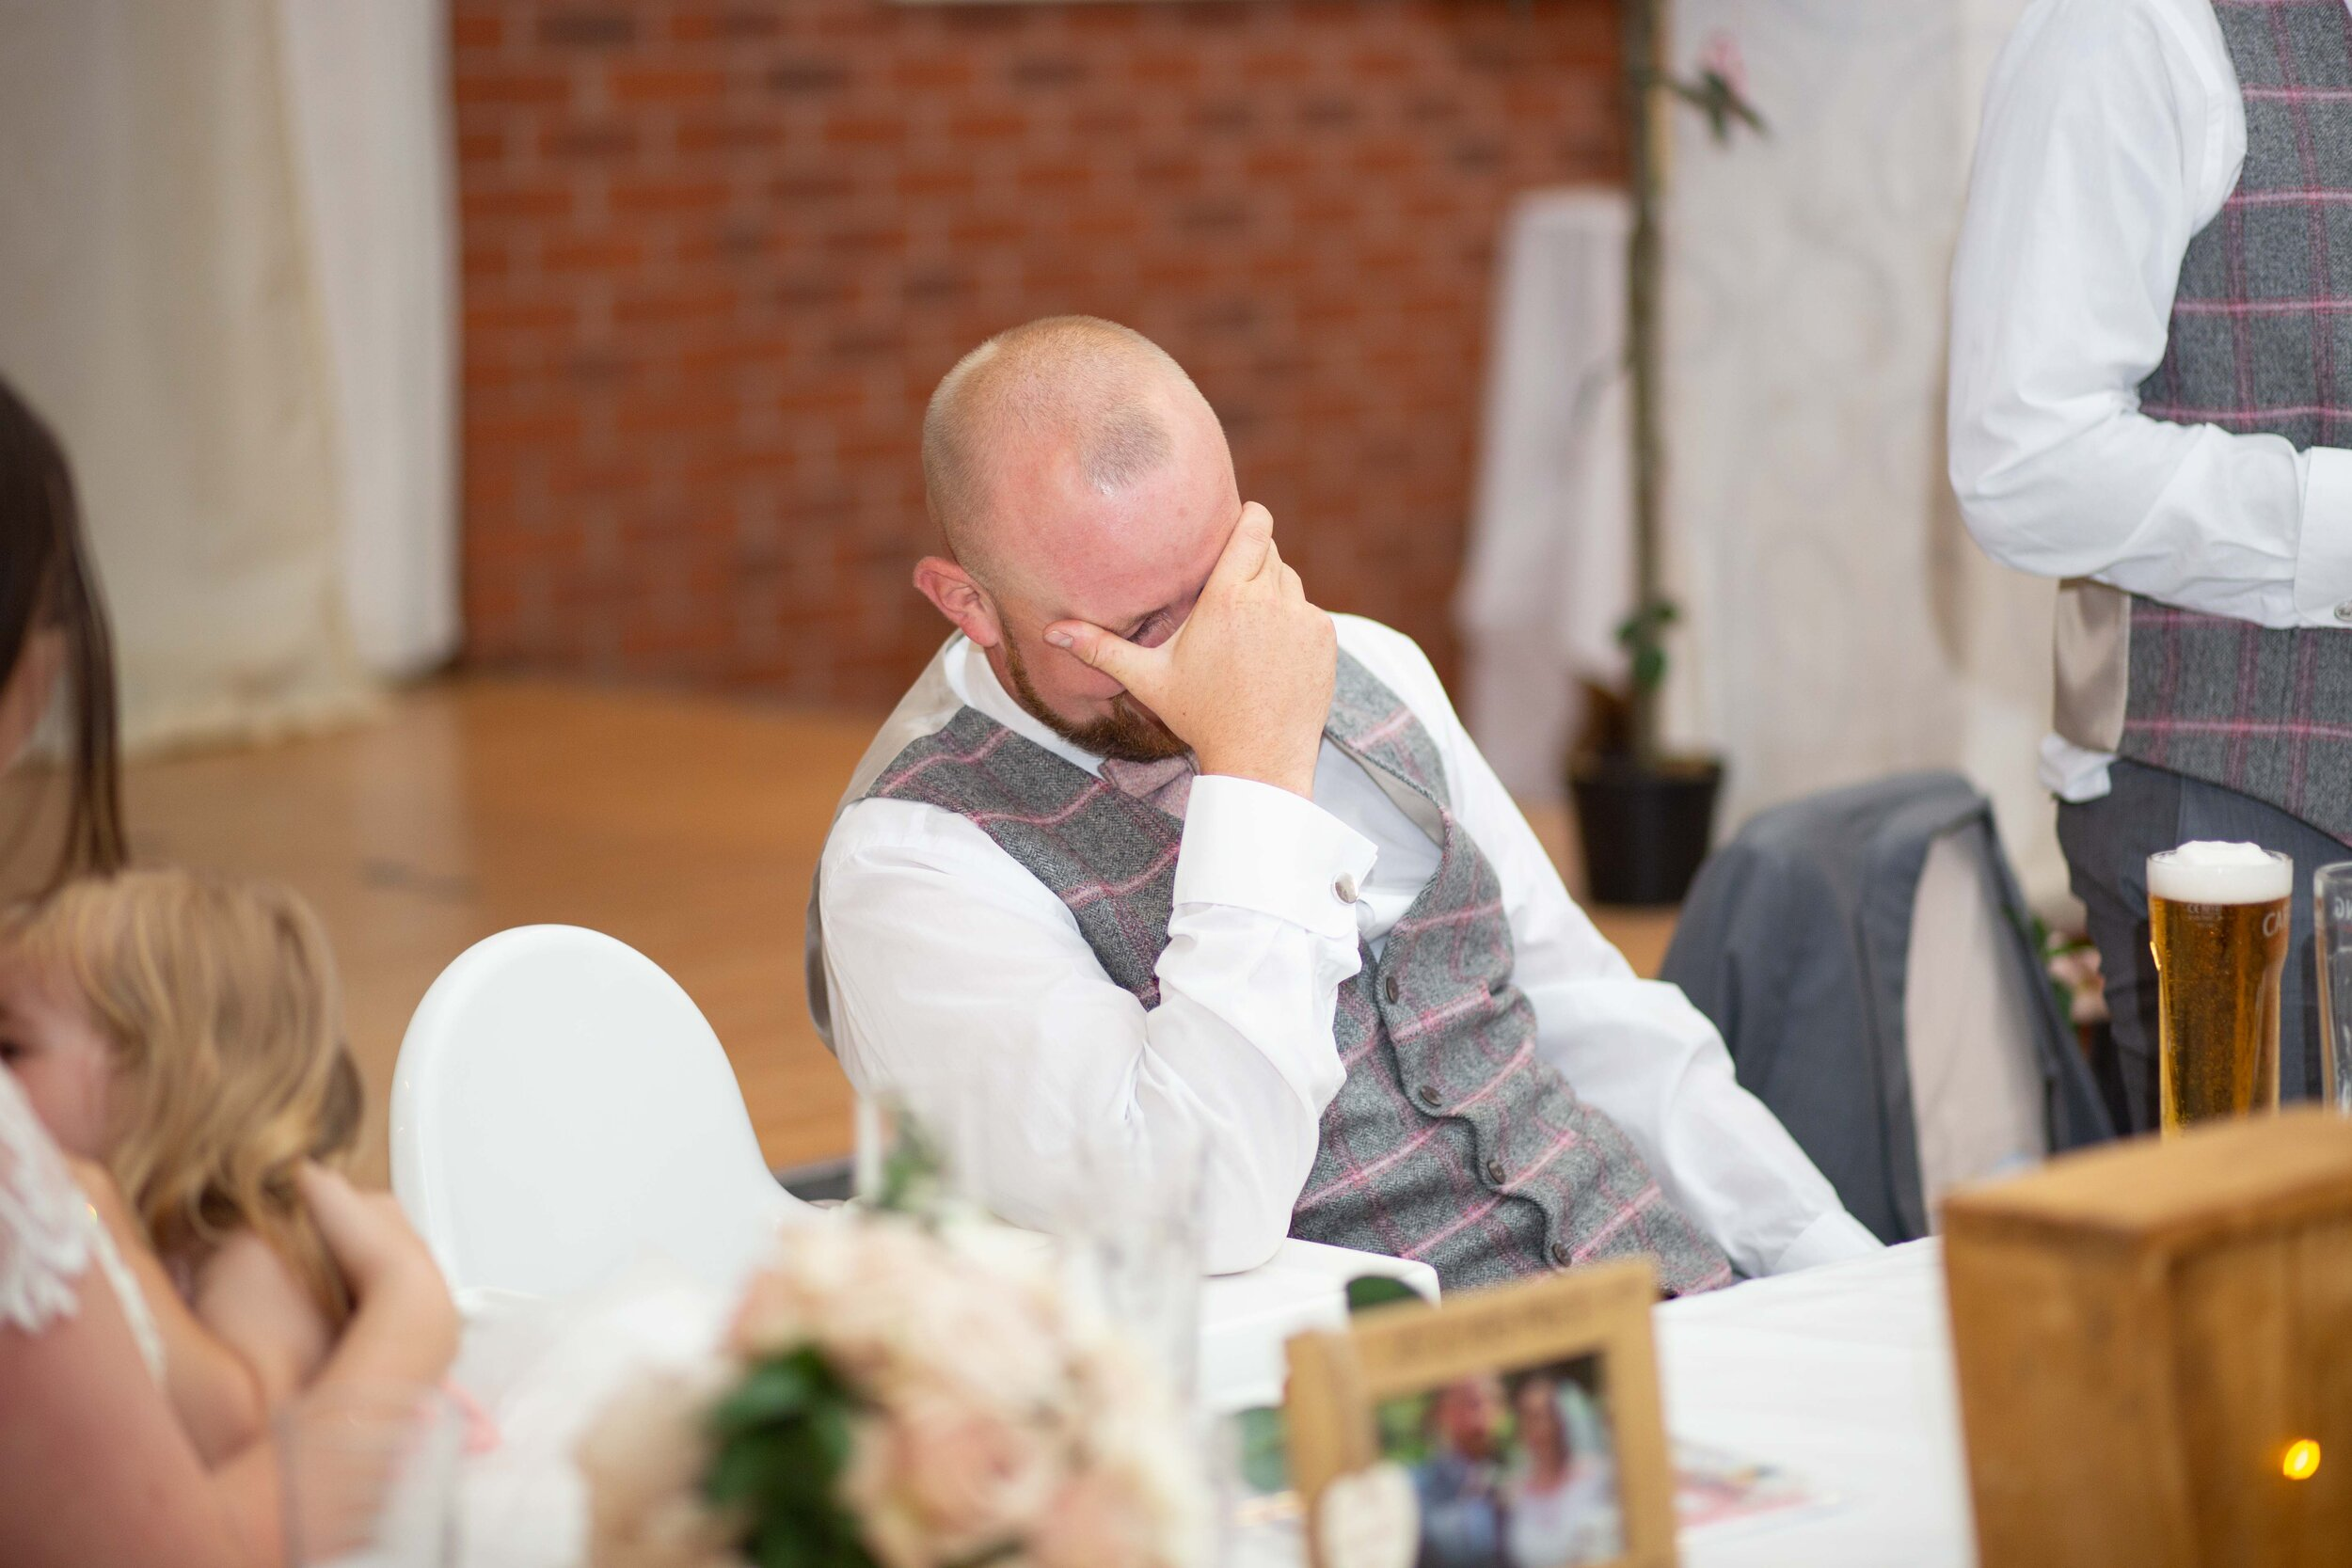 Lea Cooper photography - wedding photography - st Lawrence church dalaston West Midlands Willenhall Wednesday wedding photographer Brookfields club house cannock road - 29.JPG